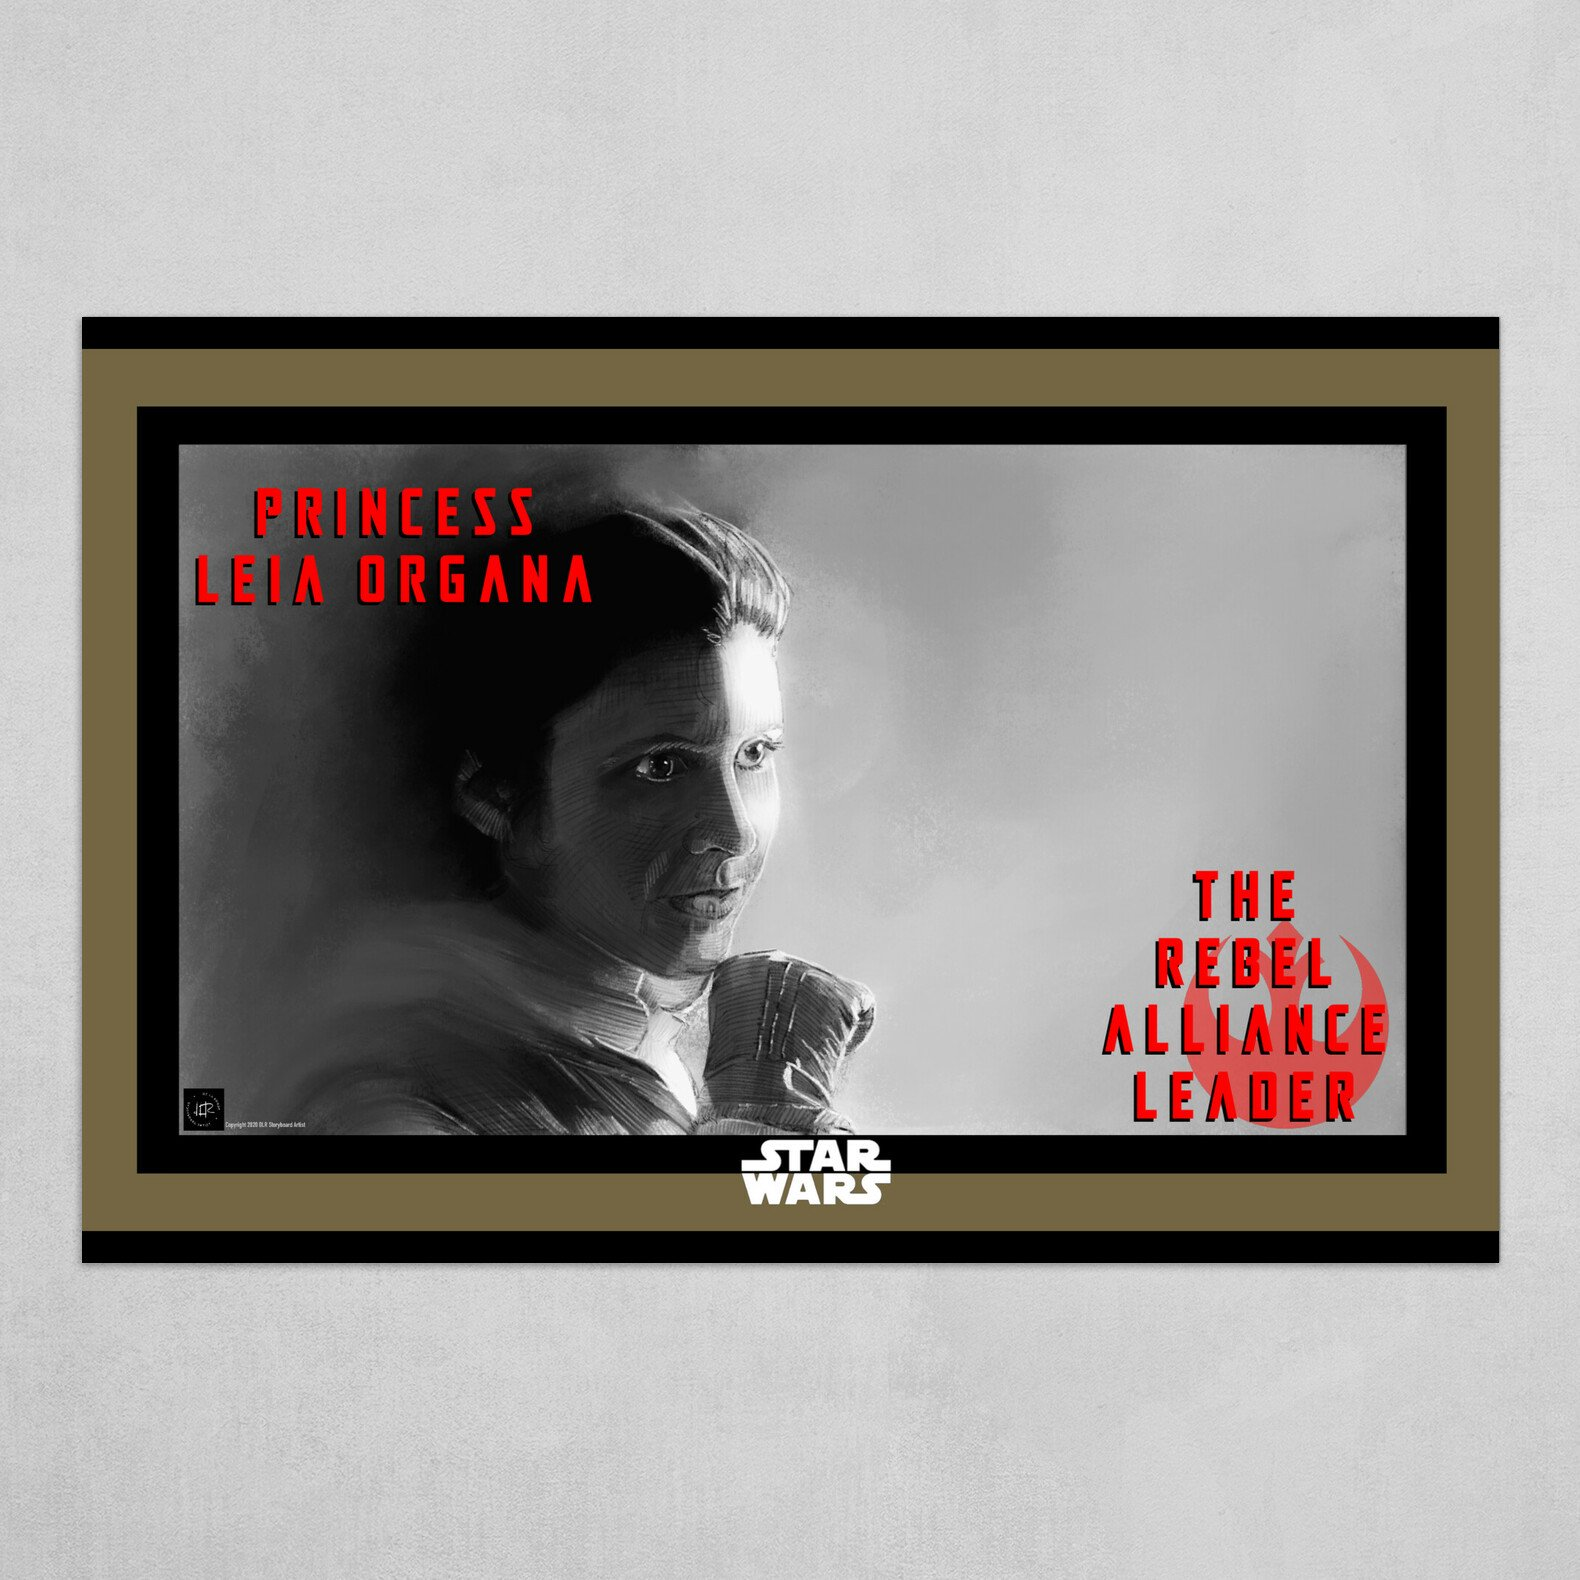 The Rebel Alliance Leader Poster B&W with Red and Gold